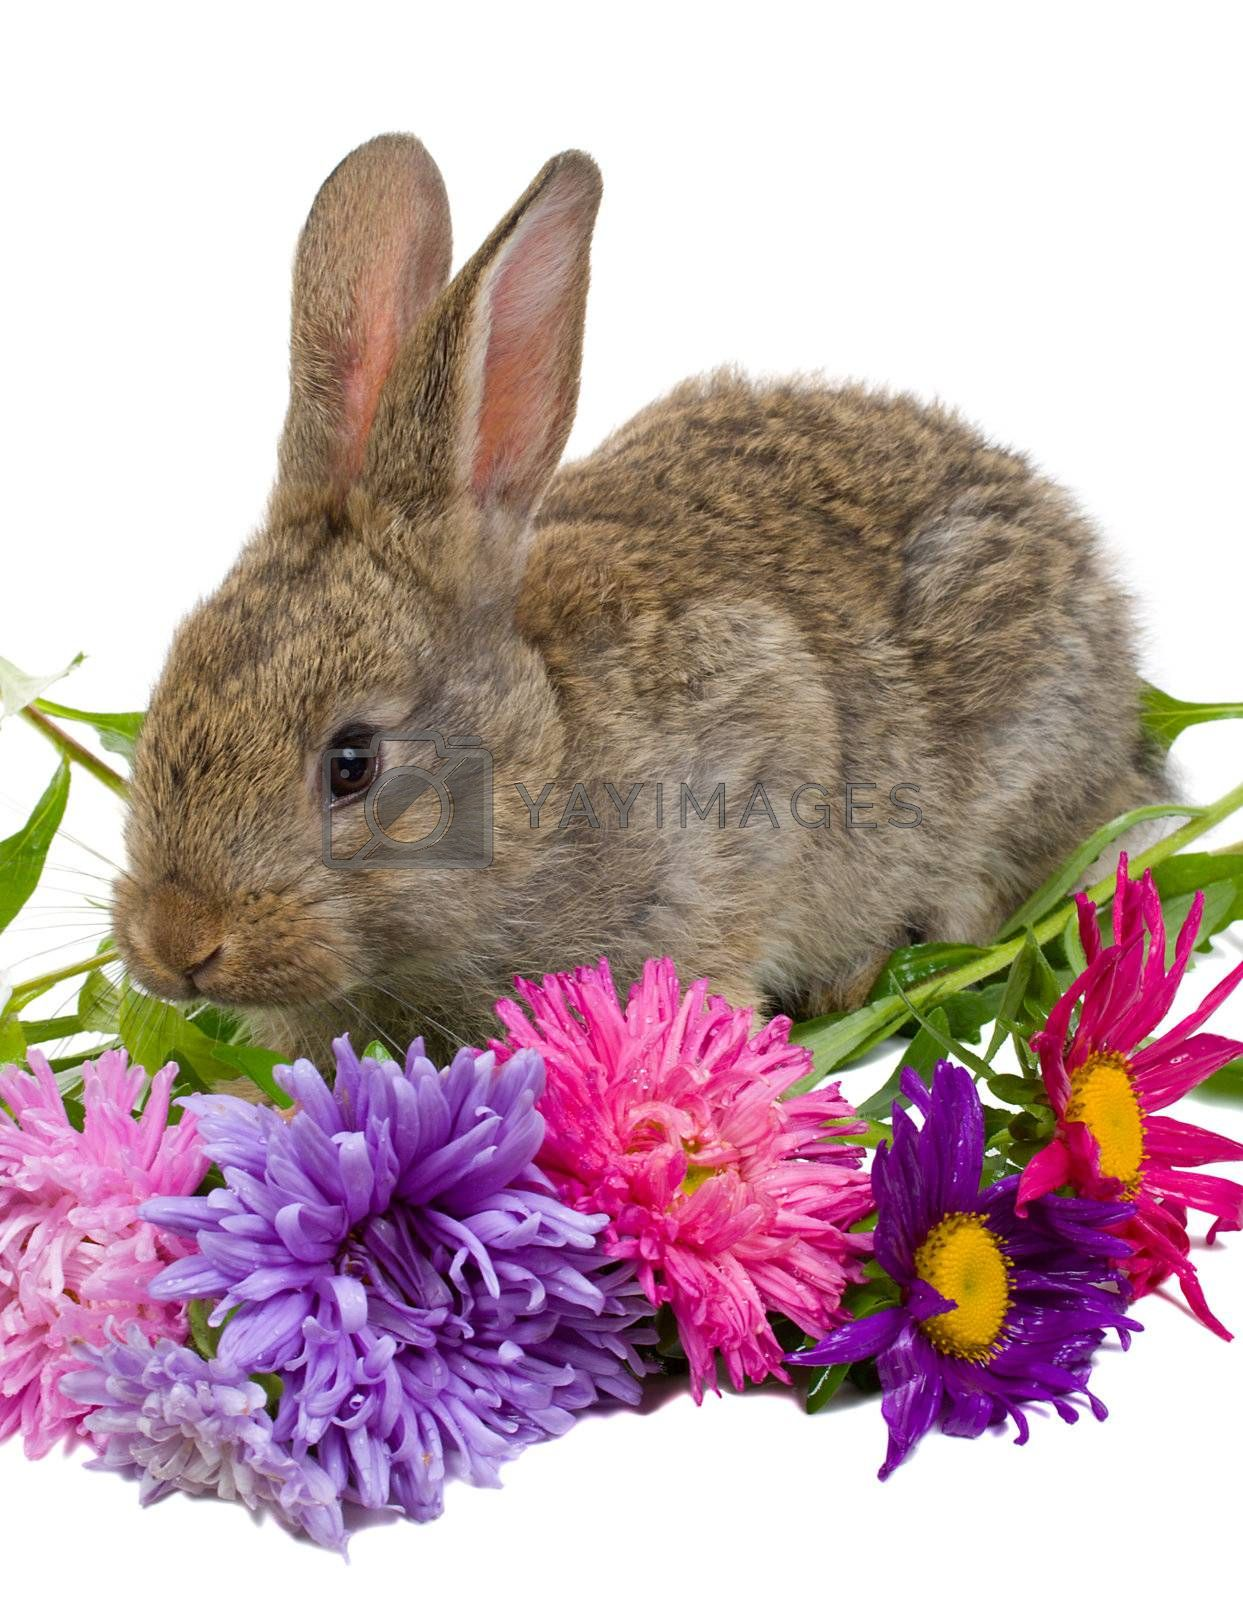 close-up bunny with flowers, isolated on white